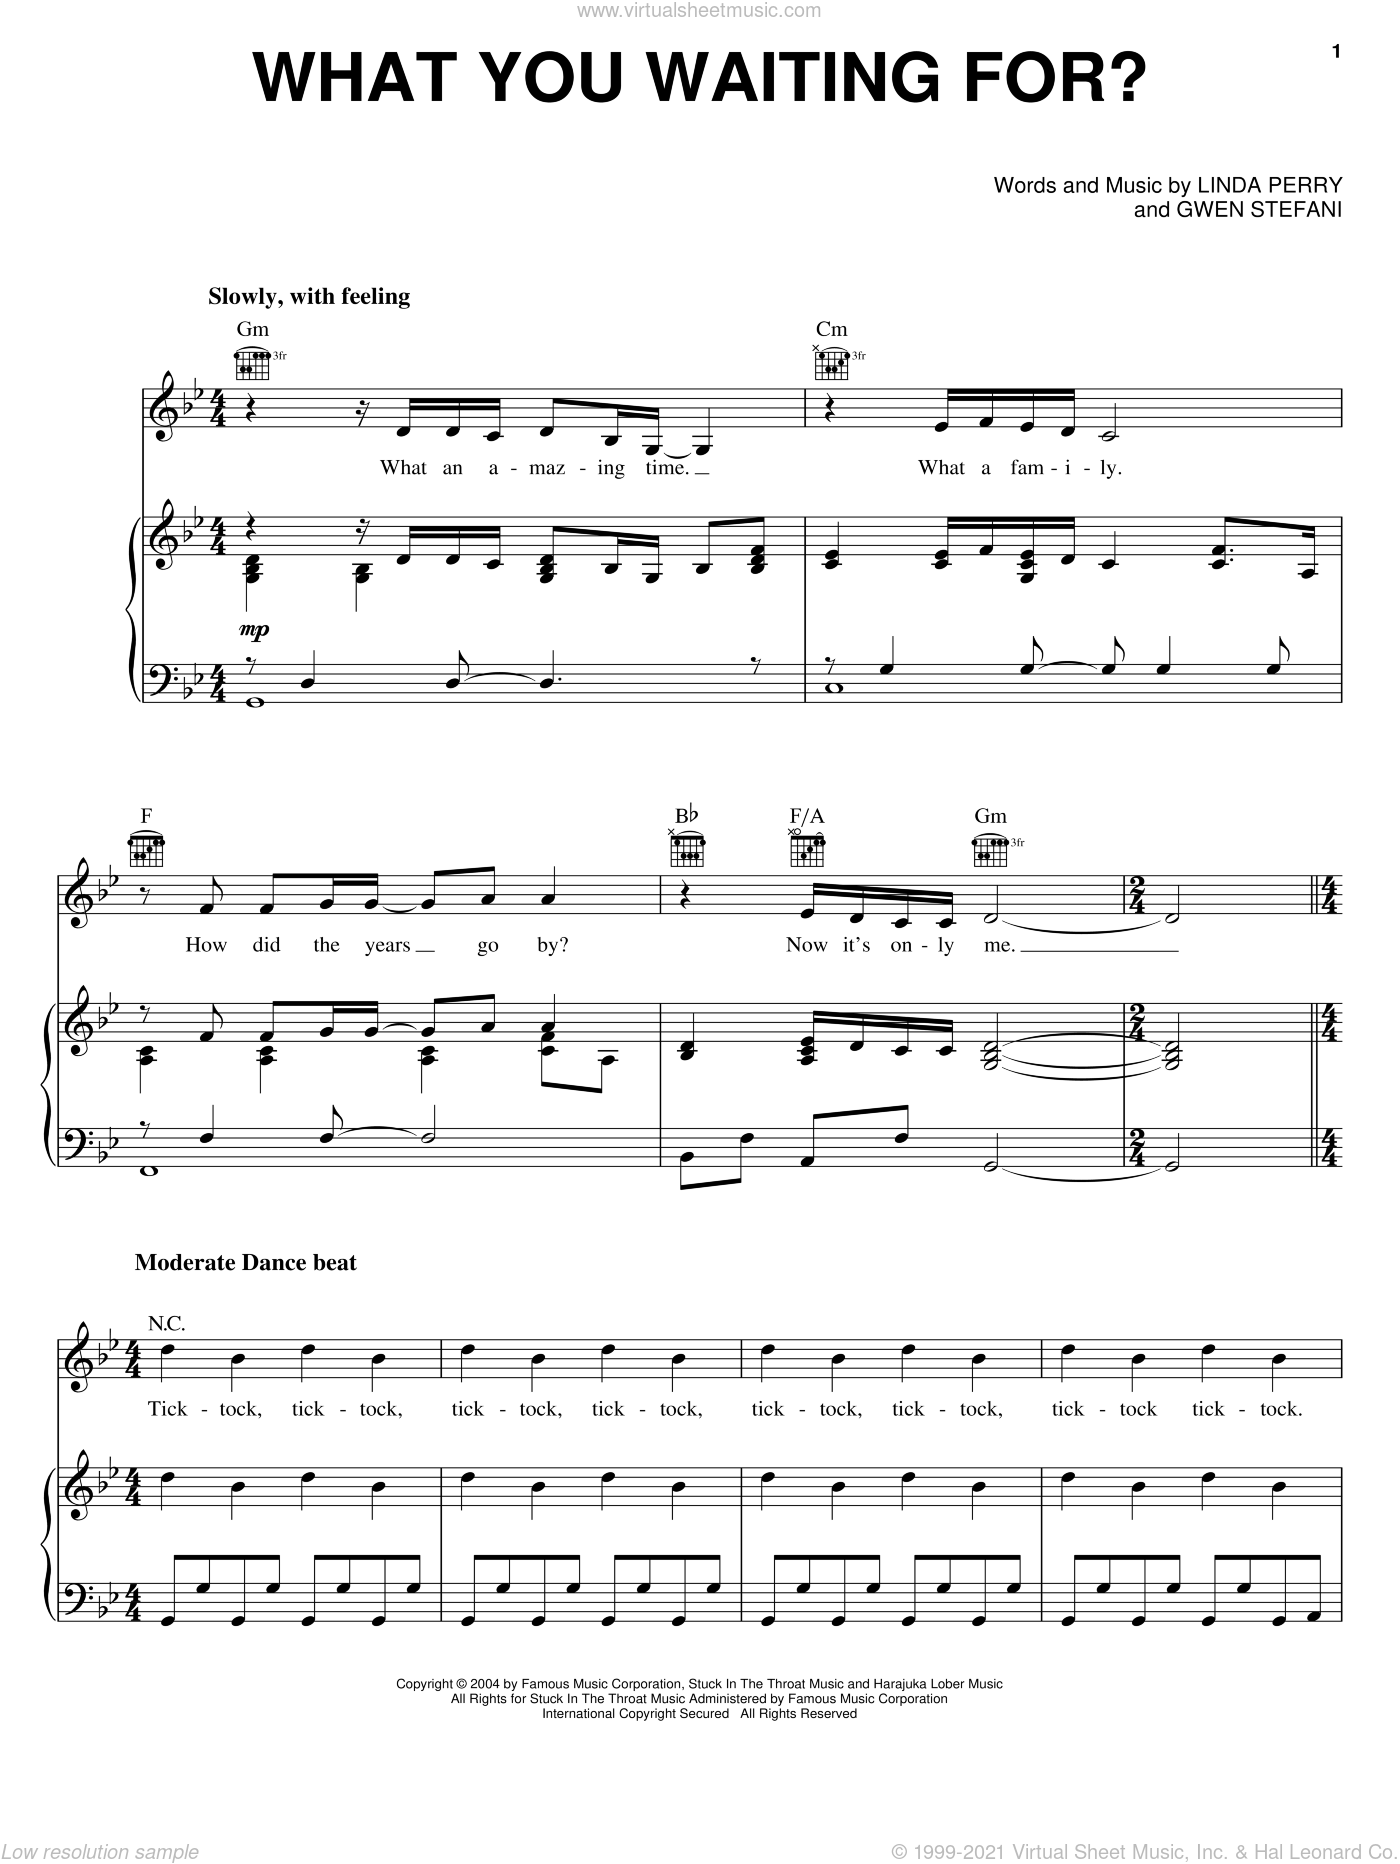 What You Waiting For? sheet music for voice, piano or guitar by Linda Perry and Gwen Stefani. Score Image Preview.